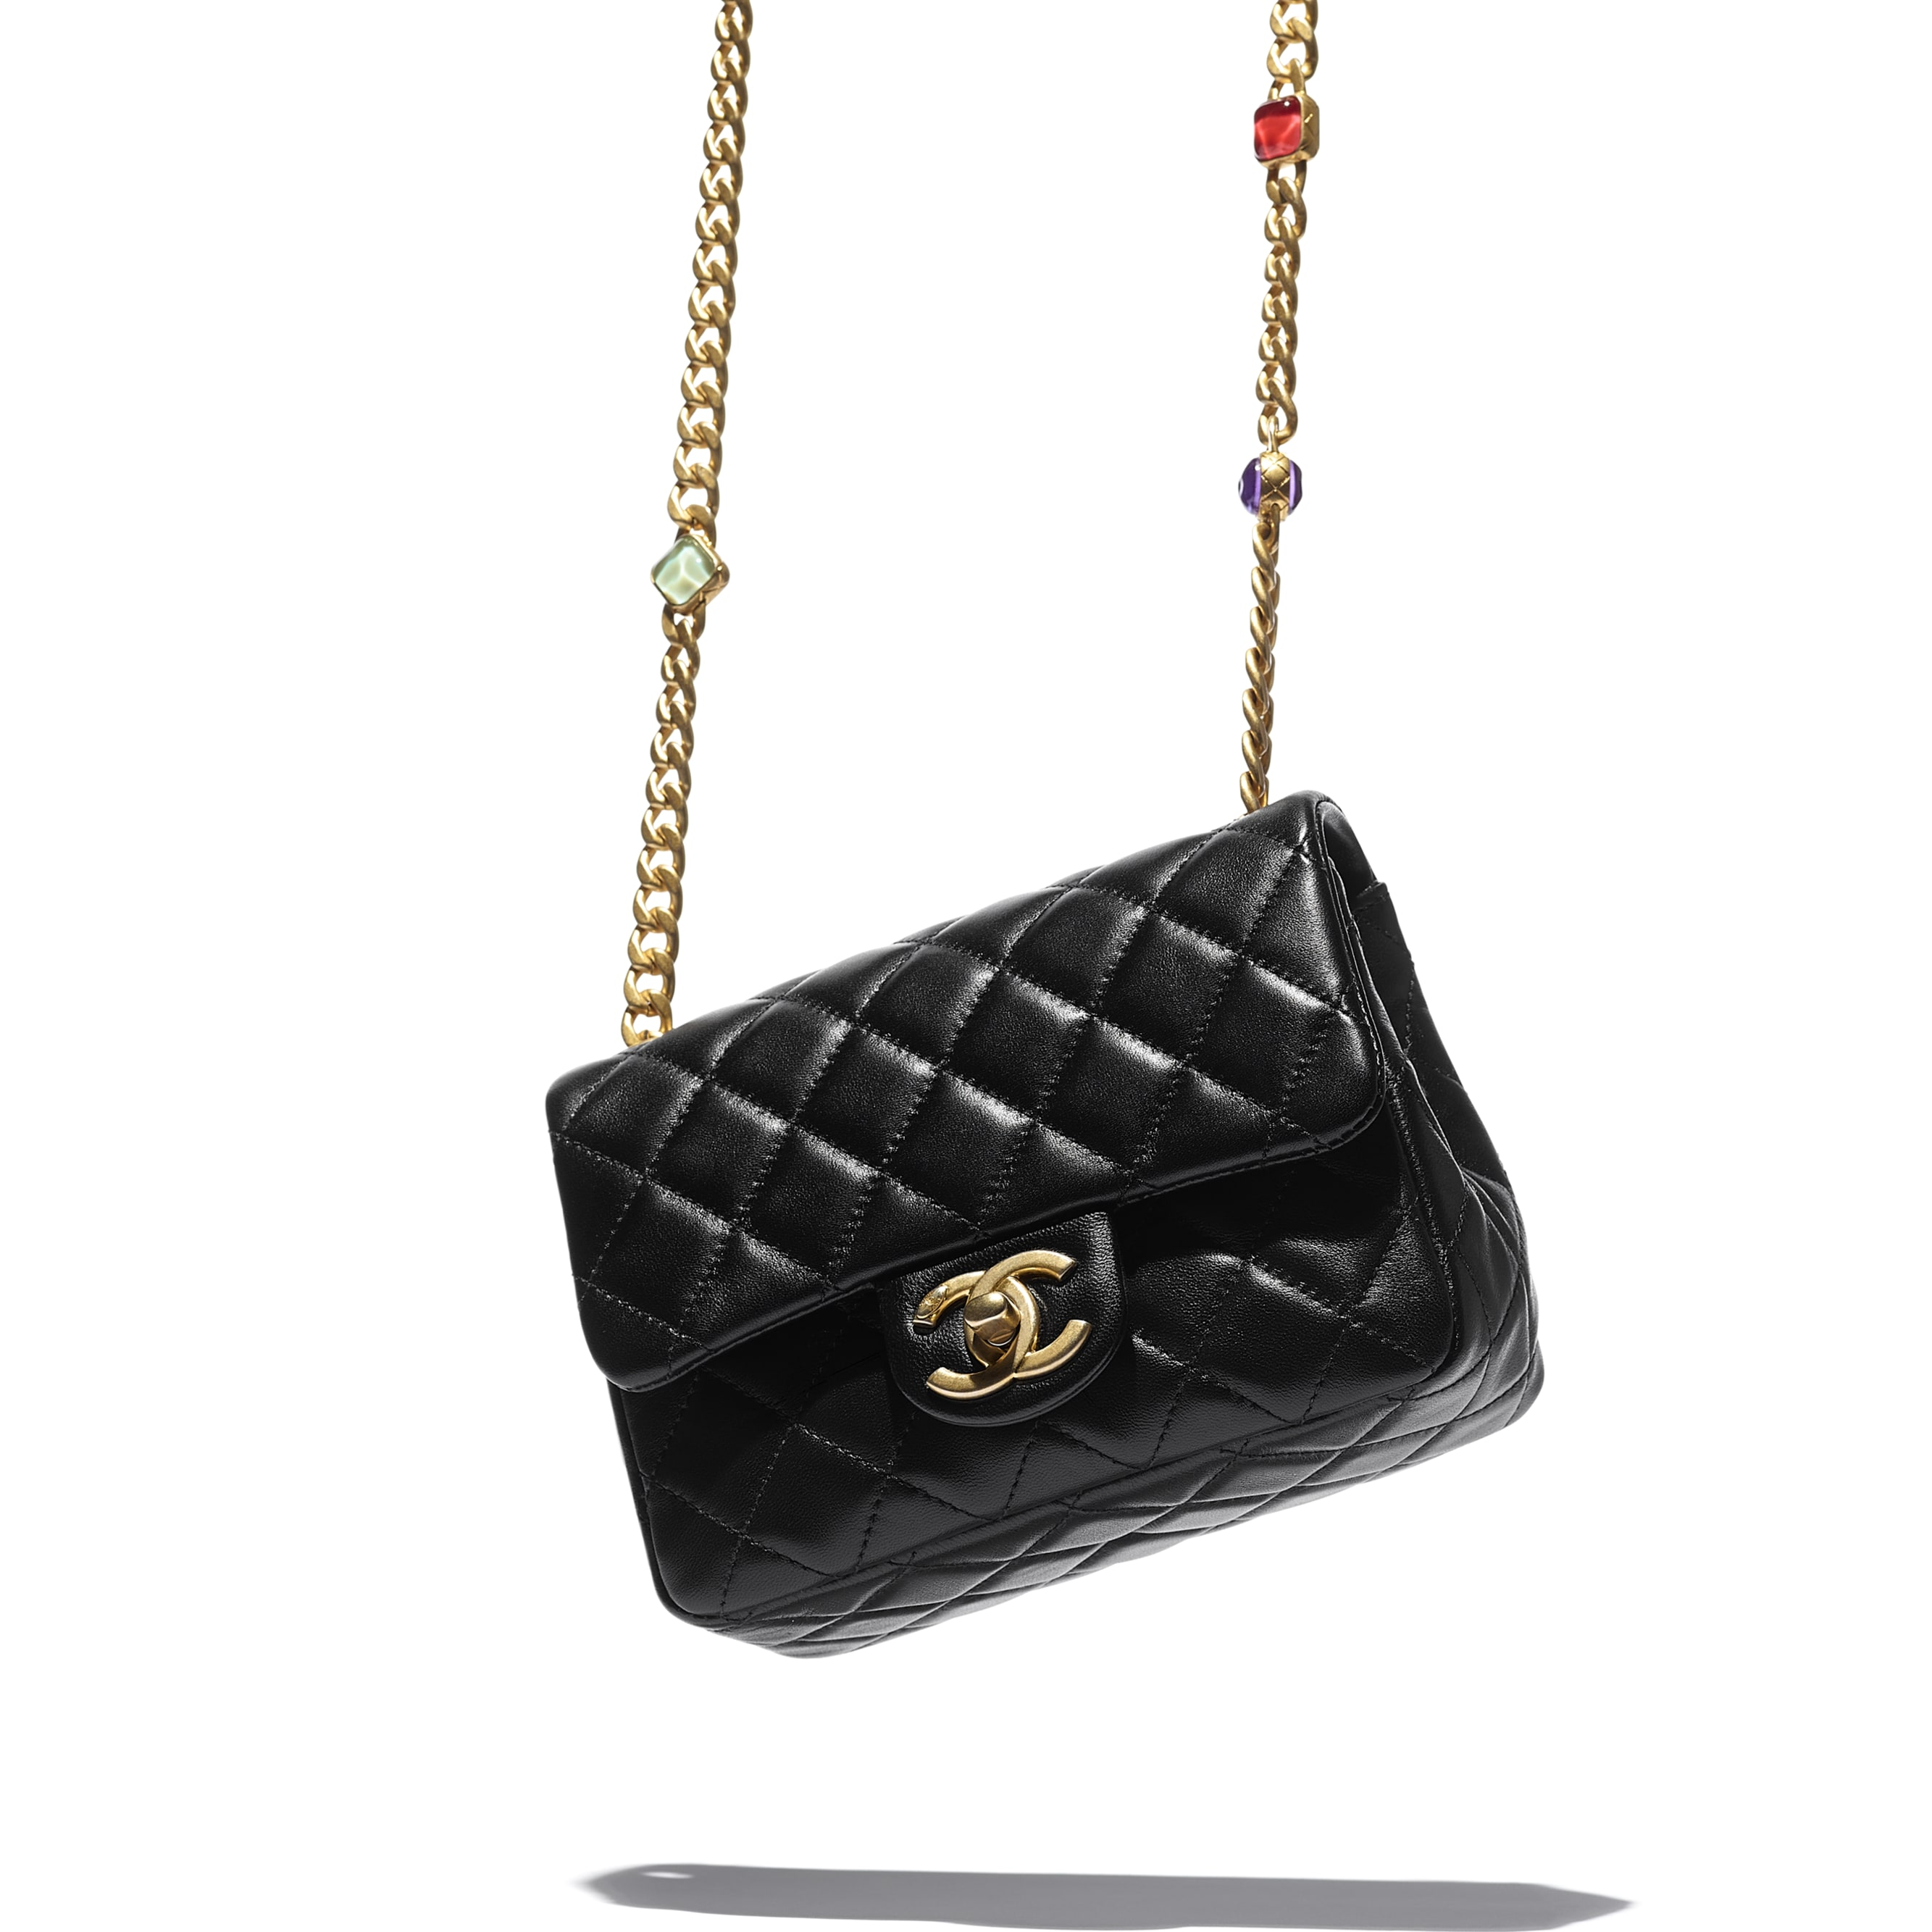 Flap Bag - Black - Lambskin, Resin & Gold-Tone Metal - CHANEL - Extra view - see standard sized version